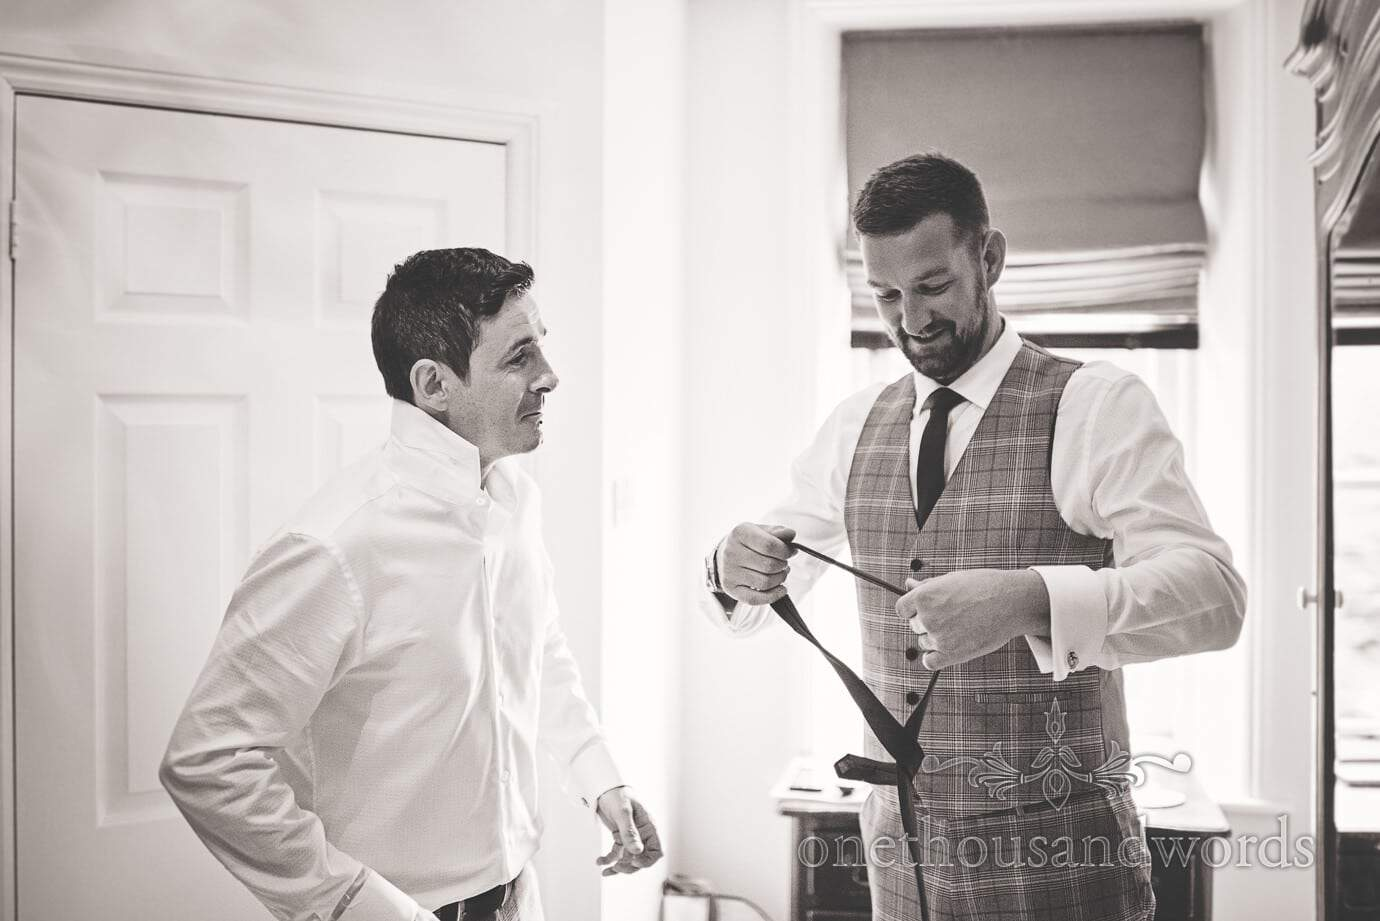 Documentary photo of groom and best man preparations in prince of Wales check suit